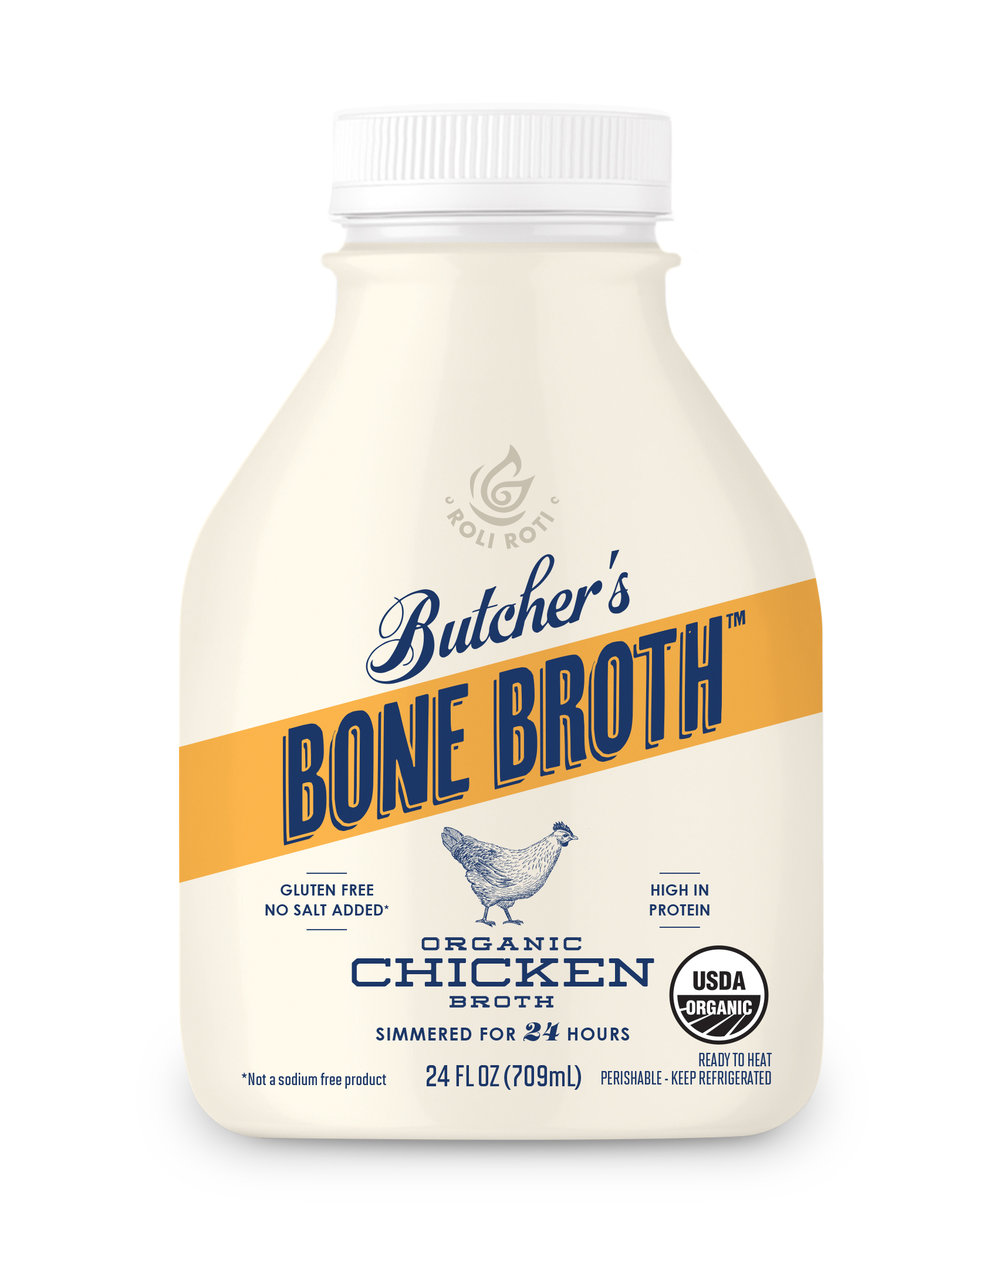 RR_BONE BROTH_ORG CHICKEN_24oz_V1.jpg